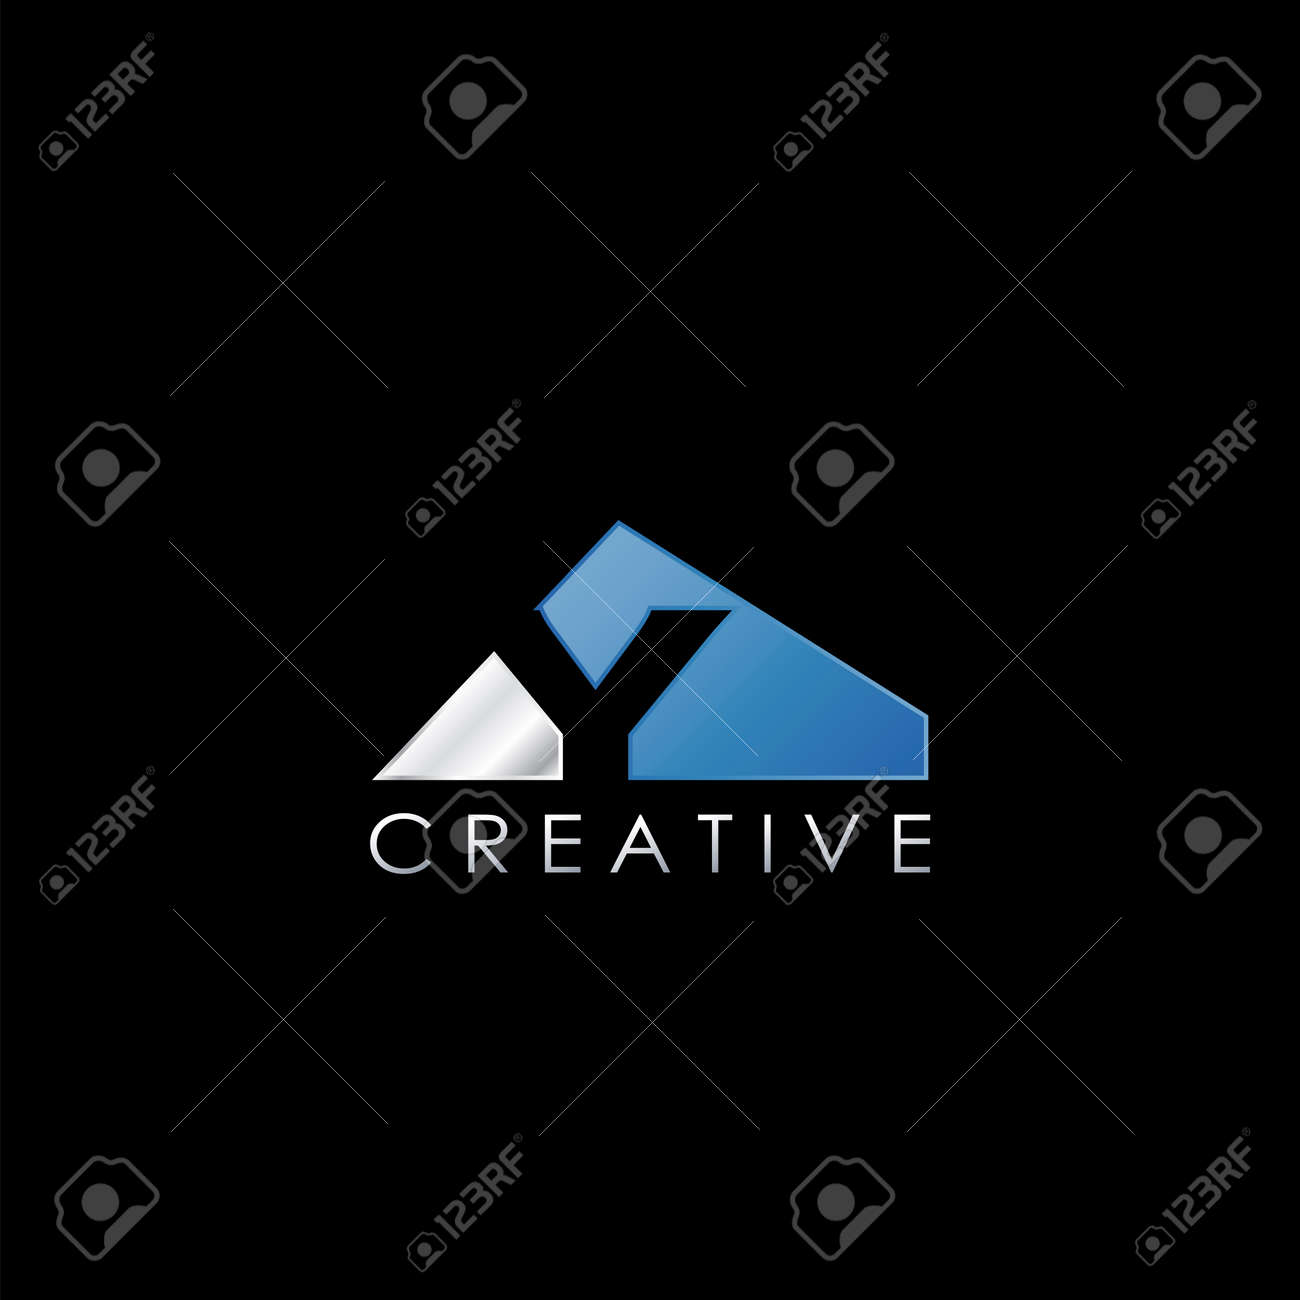 Y Letter Negative Space Logo, Creative Geometrical Logo Design Template with hidden letter initial. - 156874034